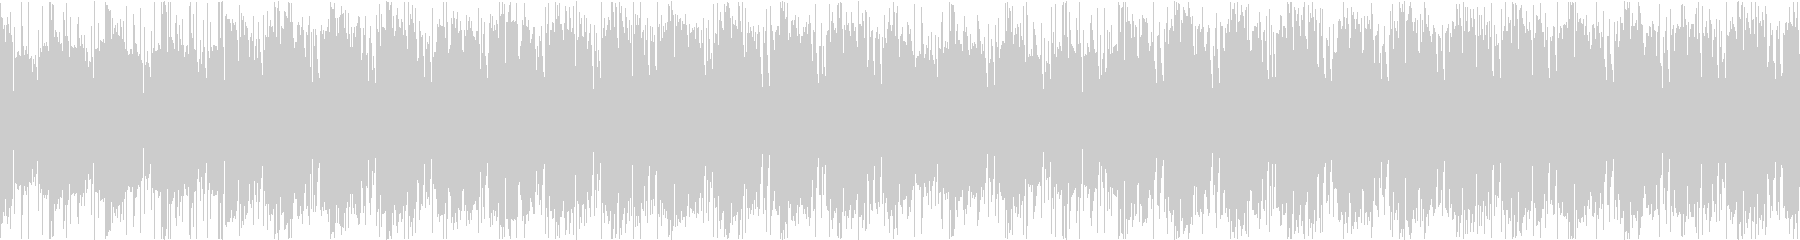 Comical song of flute and percussion's unreproduced waveform